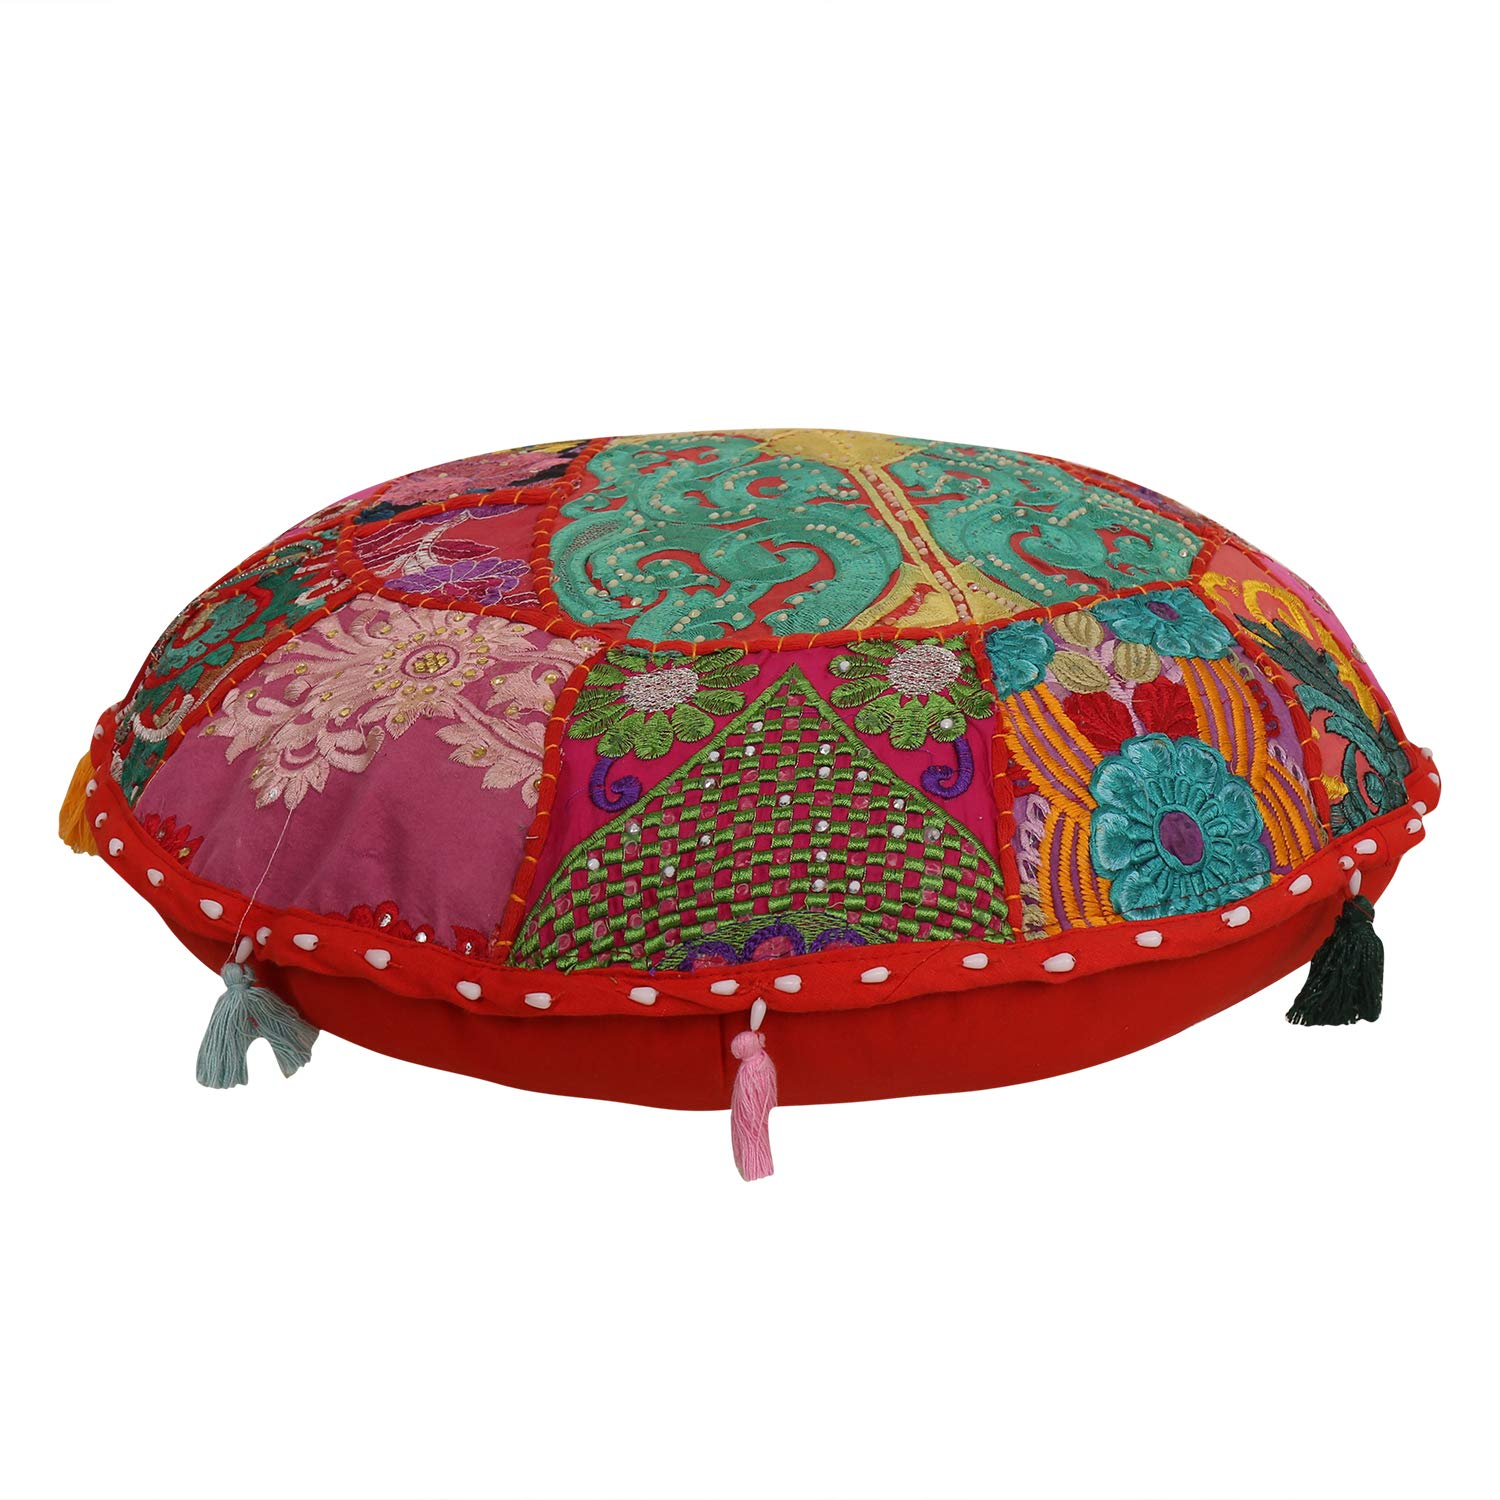 16'' Floor Pillow Cover Throw Cushion Cover Cotton Footstool Traditional Patchwork Embroidered Decor Seating Floor Tuffet Seat Pouf,cushion cover khambadiya Indina Cushion Cover Set Round Floor Cushion